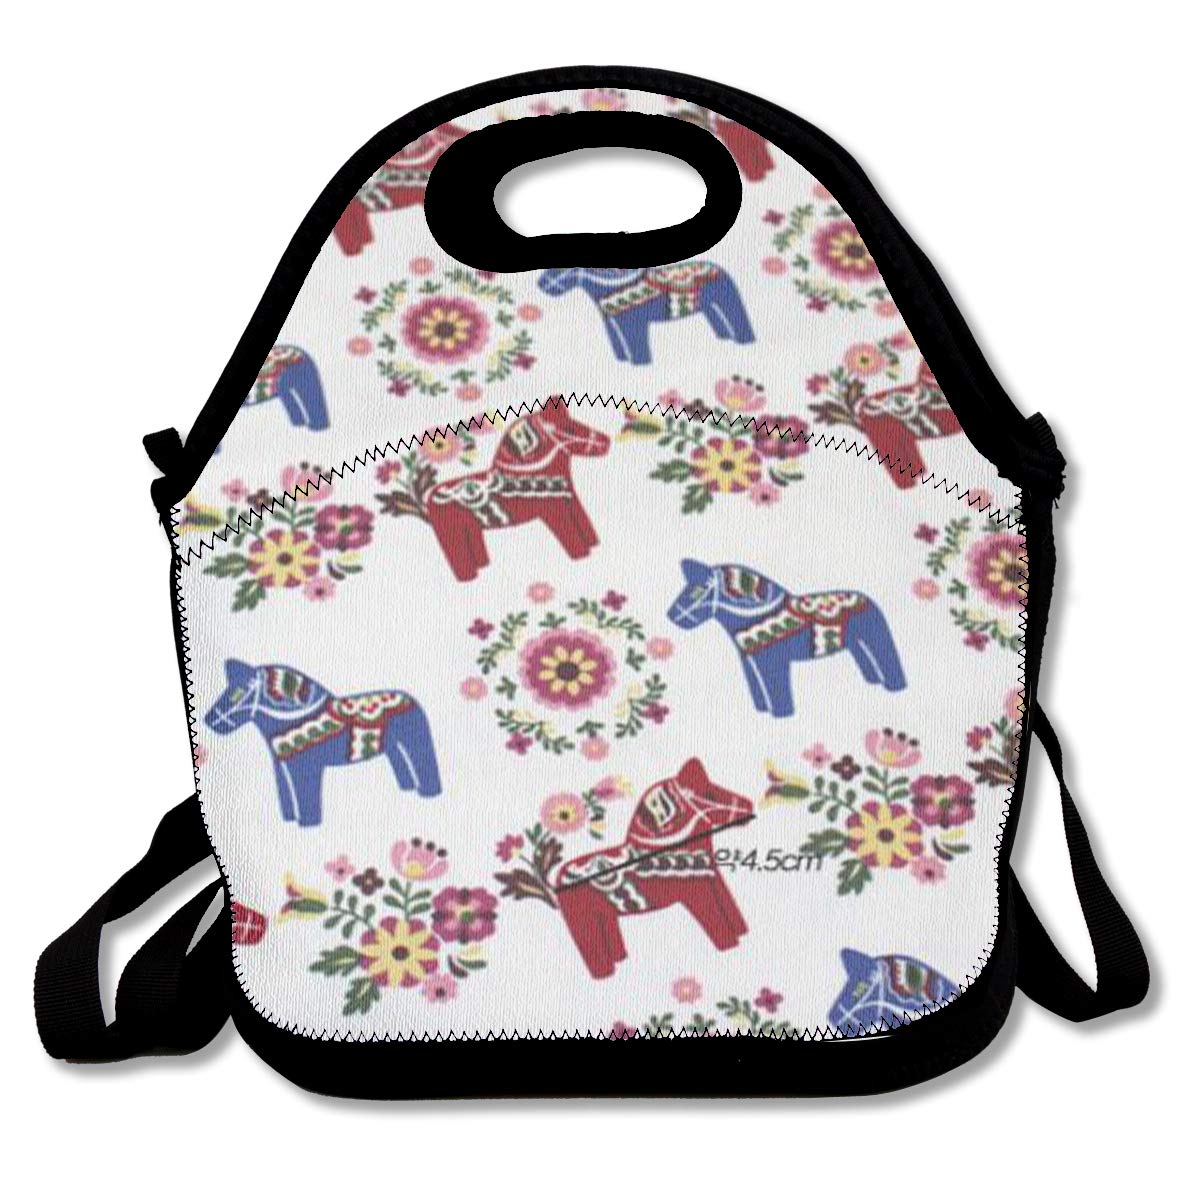 ad8cfde357bb Amazon.com - Floral Swedish Dala Horses Lunch Bag Insulated Lunch ...